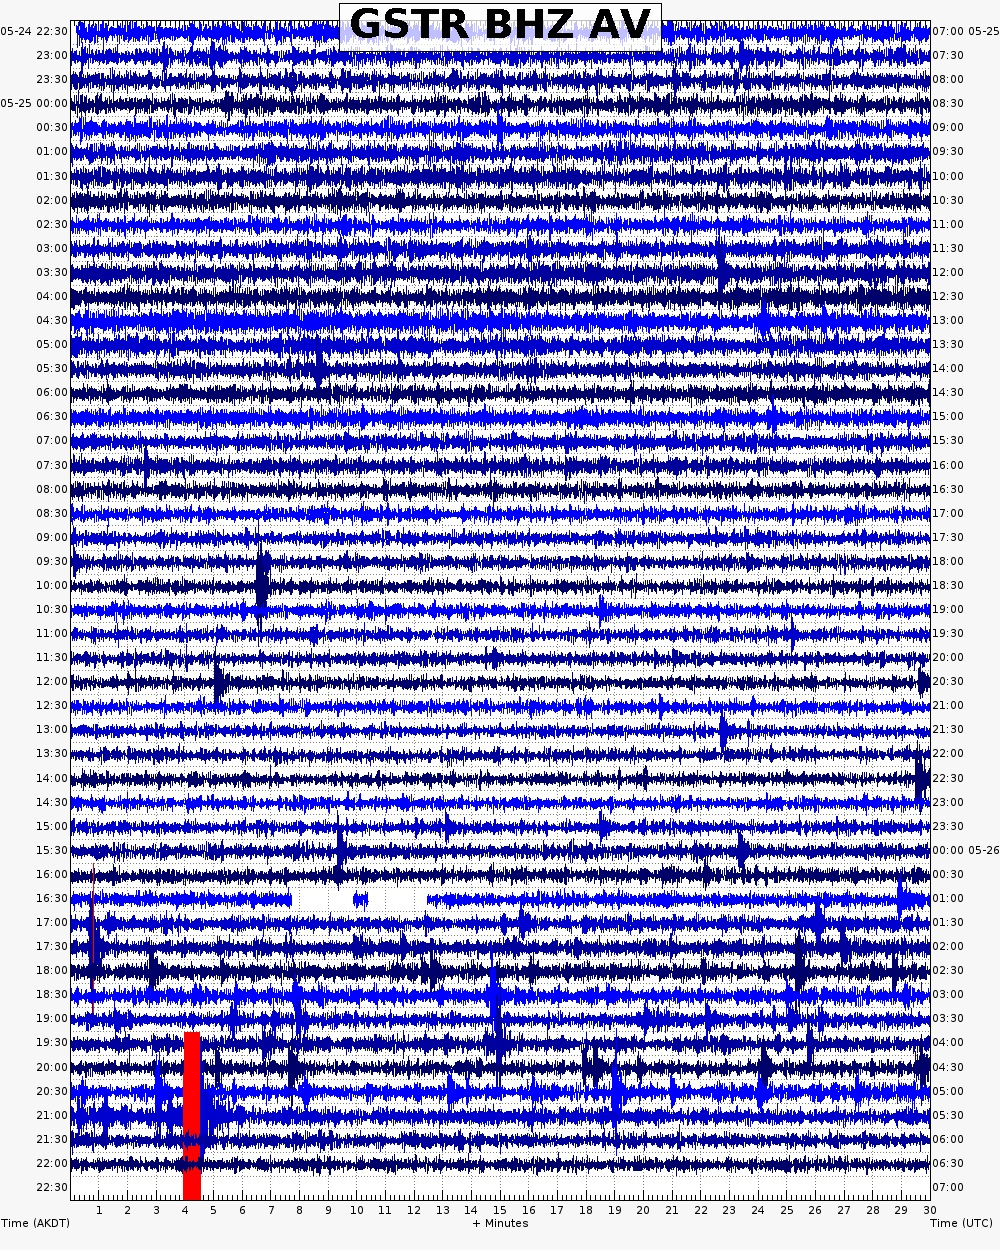 Seismic unrest at the volcano over the past day (image: AVO)